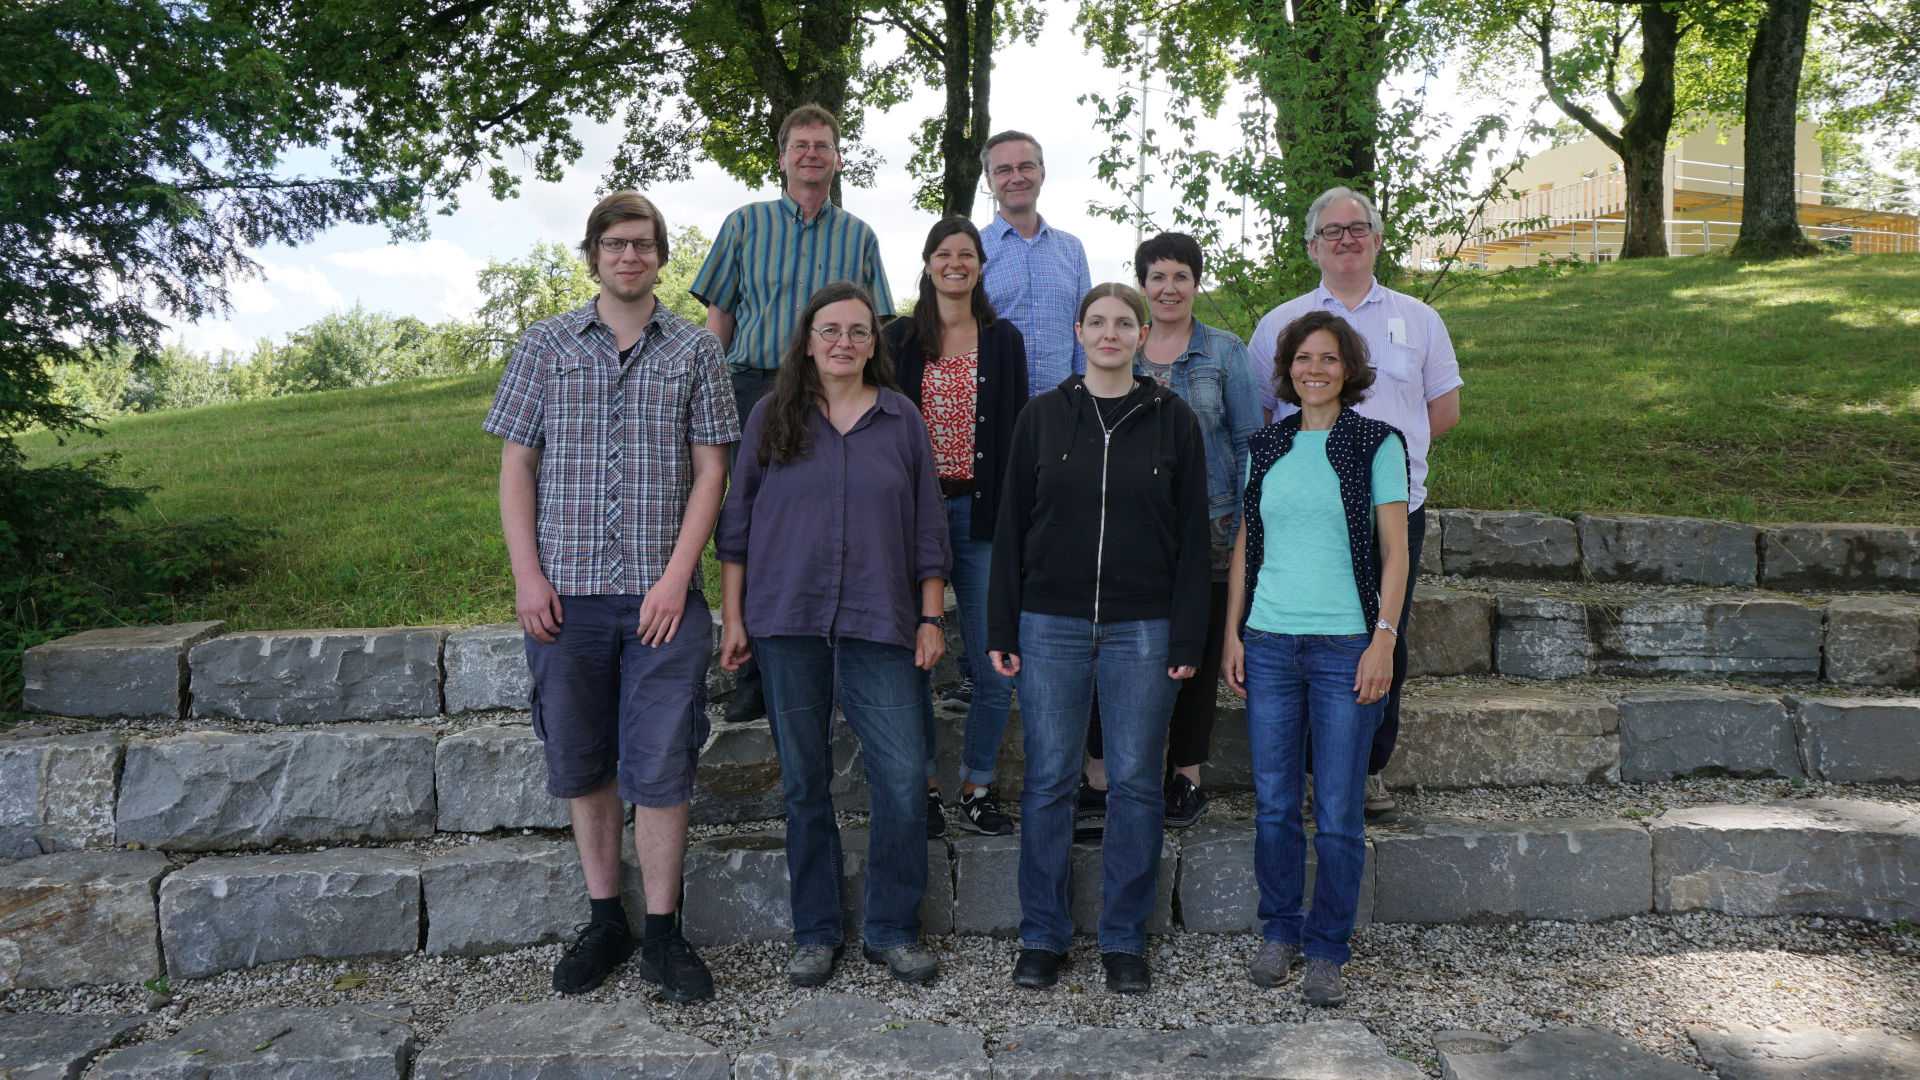 Picture of the members of the SICF during a workshop at Berne (september 2017). From left to right: Rahel C. Ackermann, Michael Matzke, Monika von Grünigen, Michael Nick, André Barmasse, Anne-Francine Auberson, Markus Peter (president of the SICF committe)